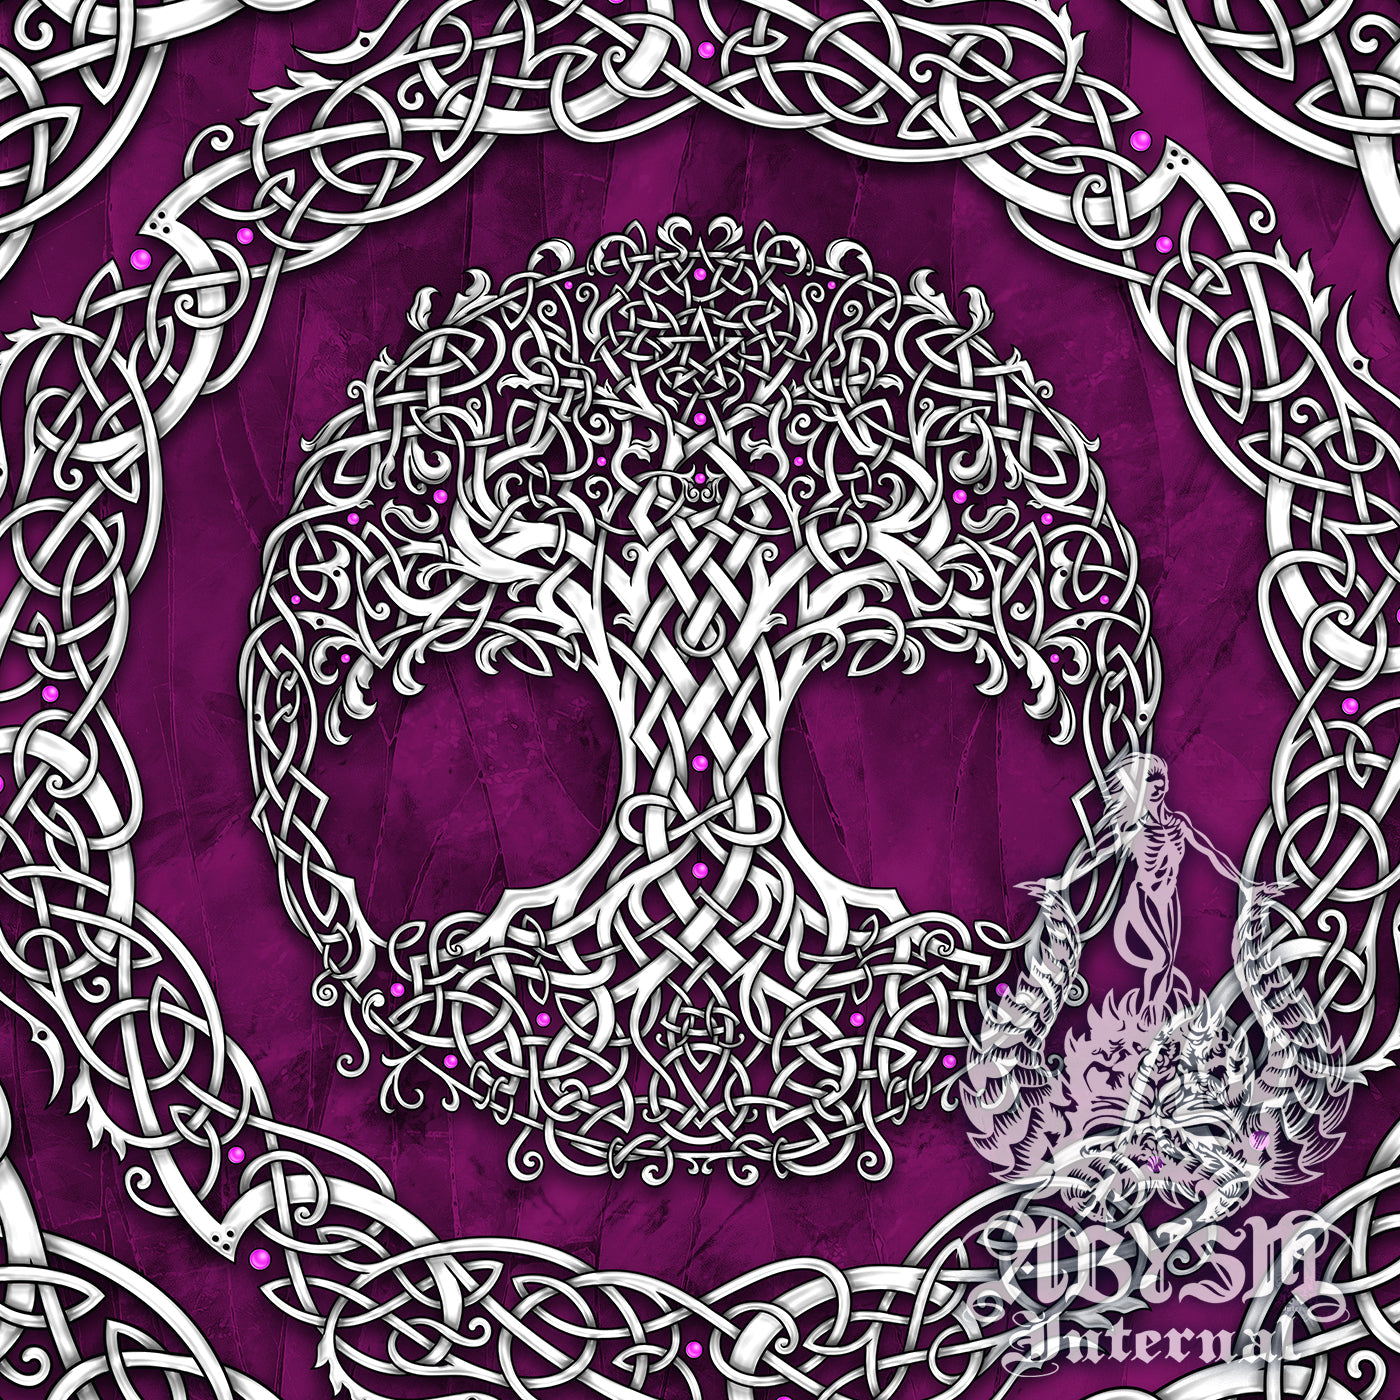 Celtic Tree of Life or Cosmic Tree, Wicca design with pentacle